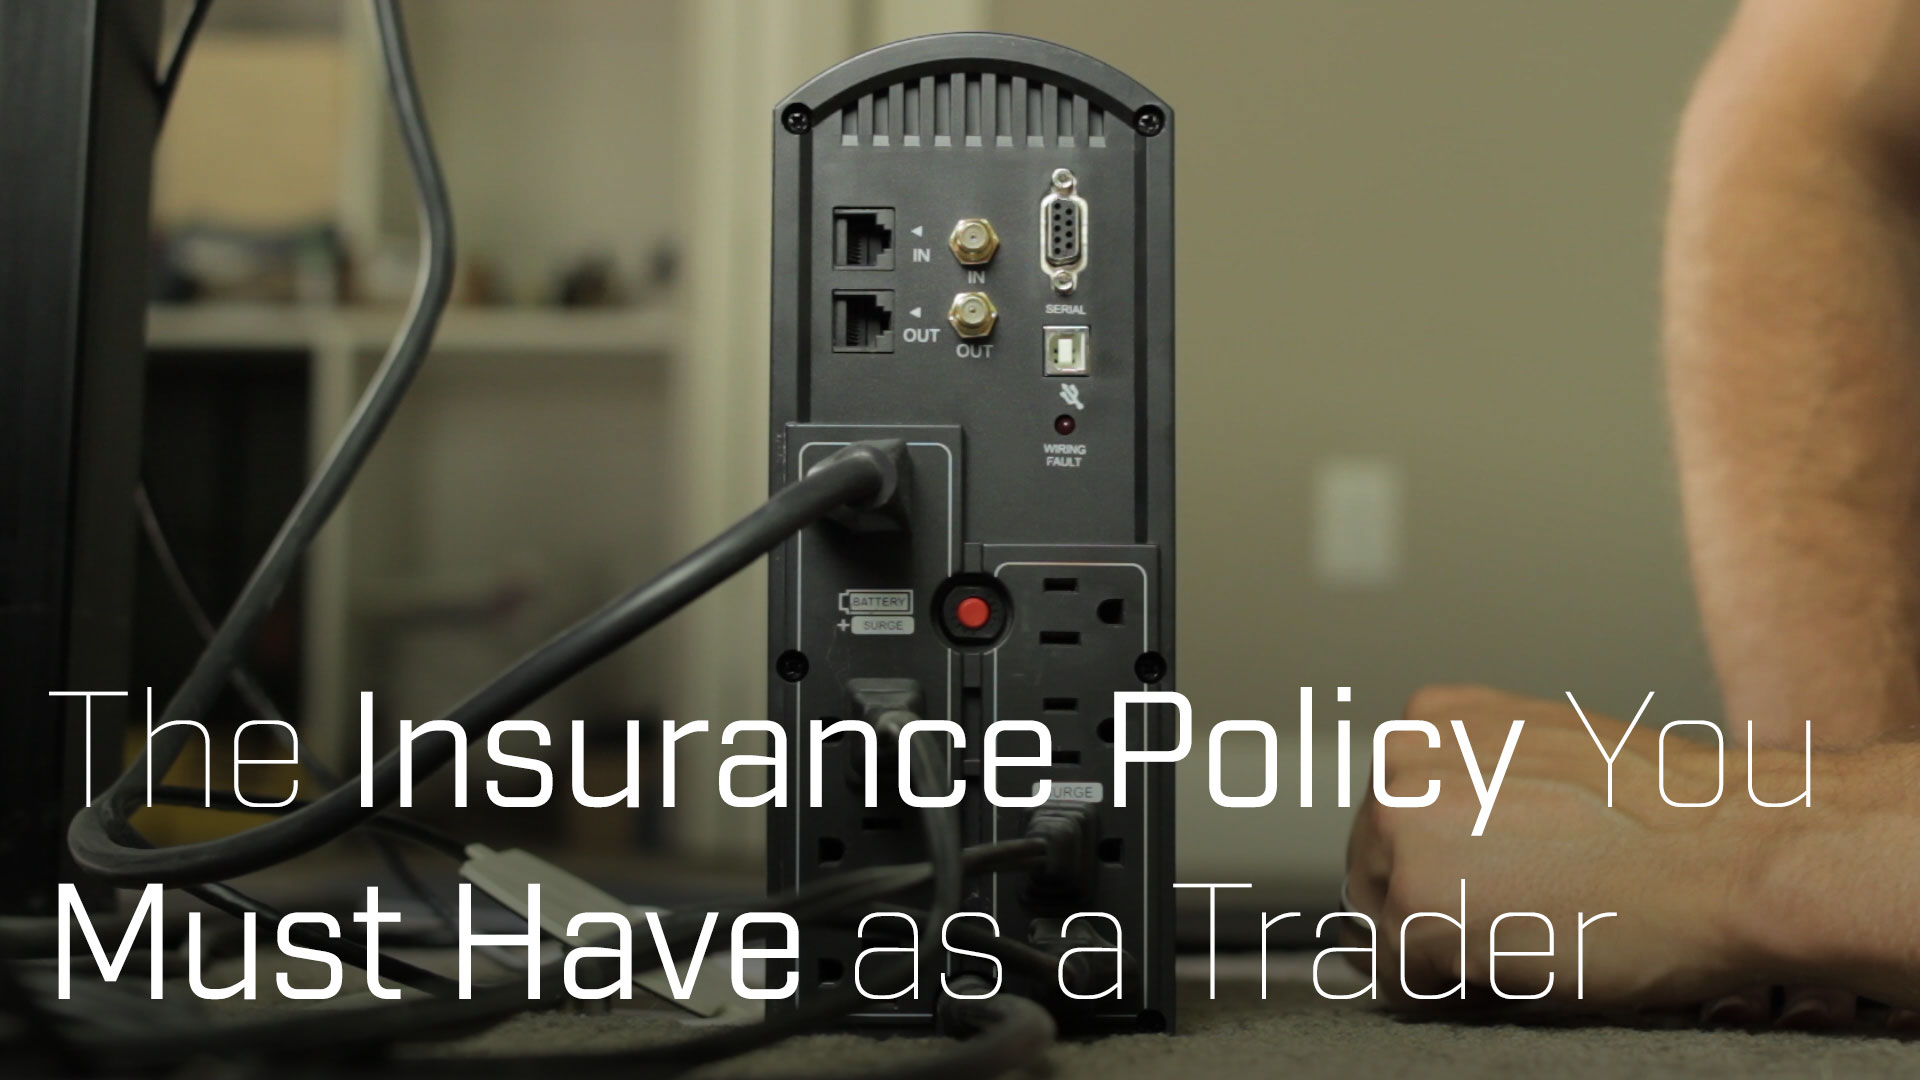 The Insurance Policy You Must Have as a Trader